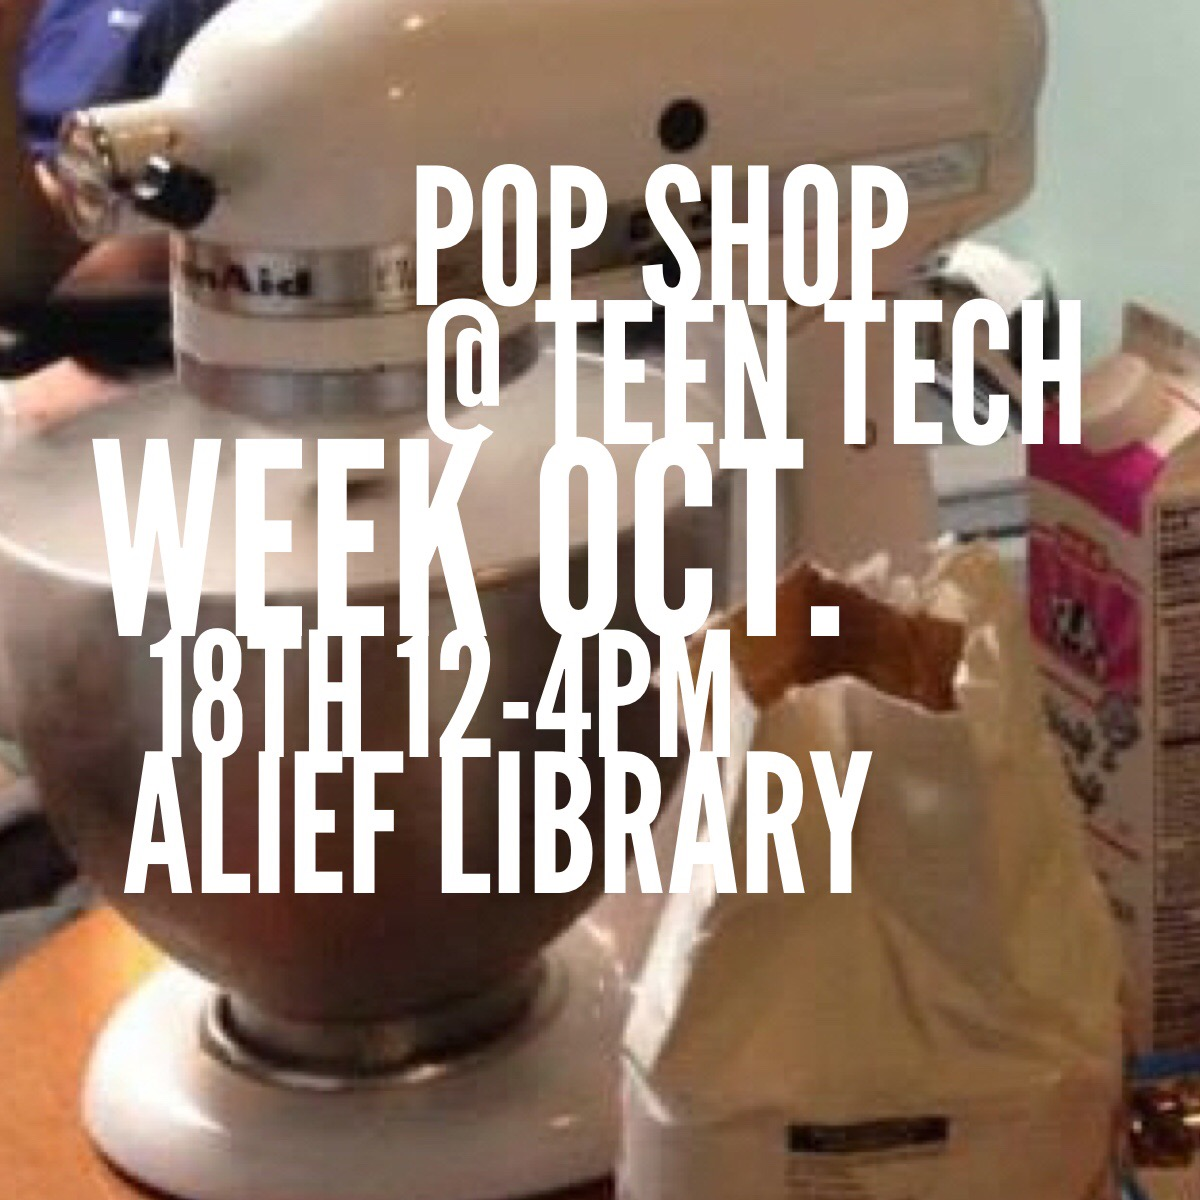 Teen Tech Week Alief Library Houston TX | Citgo Sponsors the Houston Public Library Series of Maker Activities for Teens